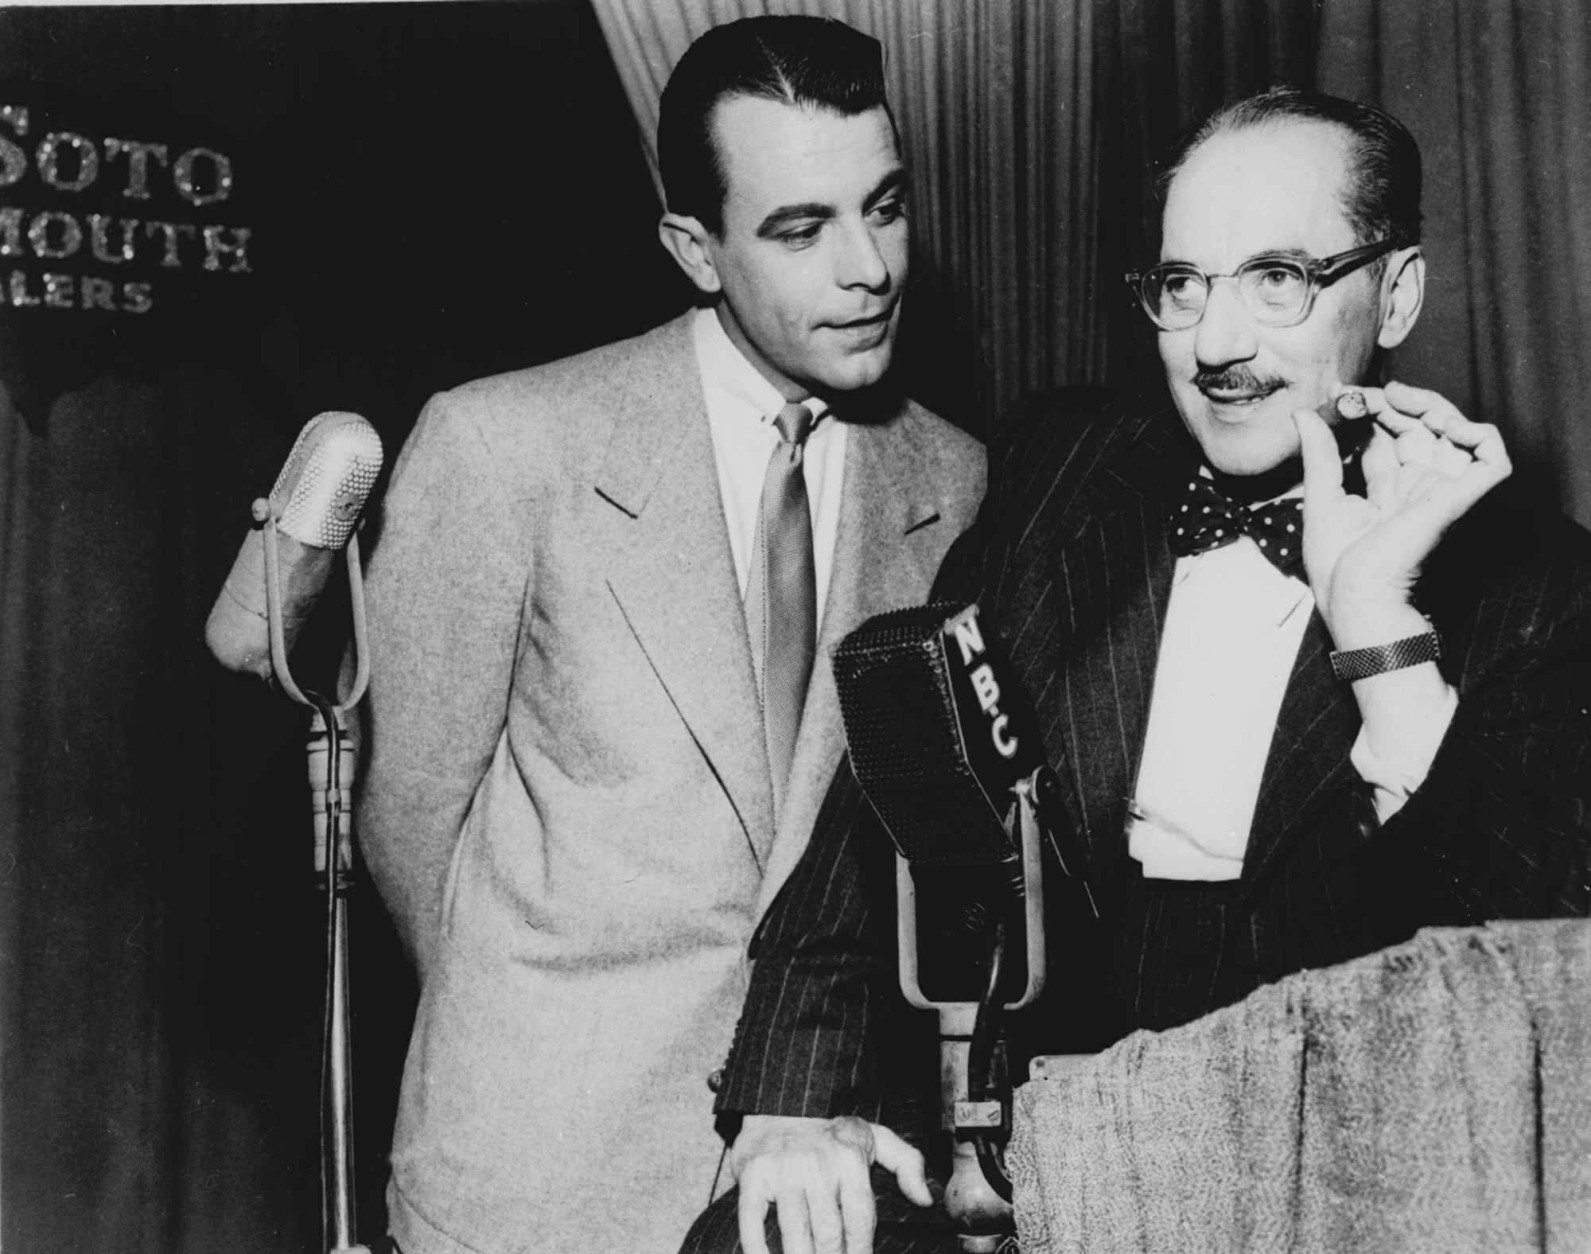 """FILE--George Fenneman is seen in character as Groucho Marx's sidekick and frequent foil on NBC's """"You Bet Your Life"""" in this undated file photo. Fenneman died last Thursday at his Los Angeles home, his wife Peggy said Wednesday, June 4, 1997.  The cause was attributed to emphysema.(AP Photo)"""